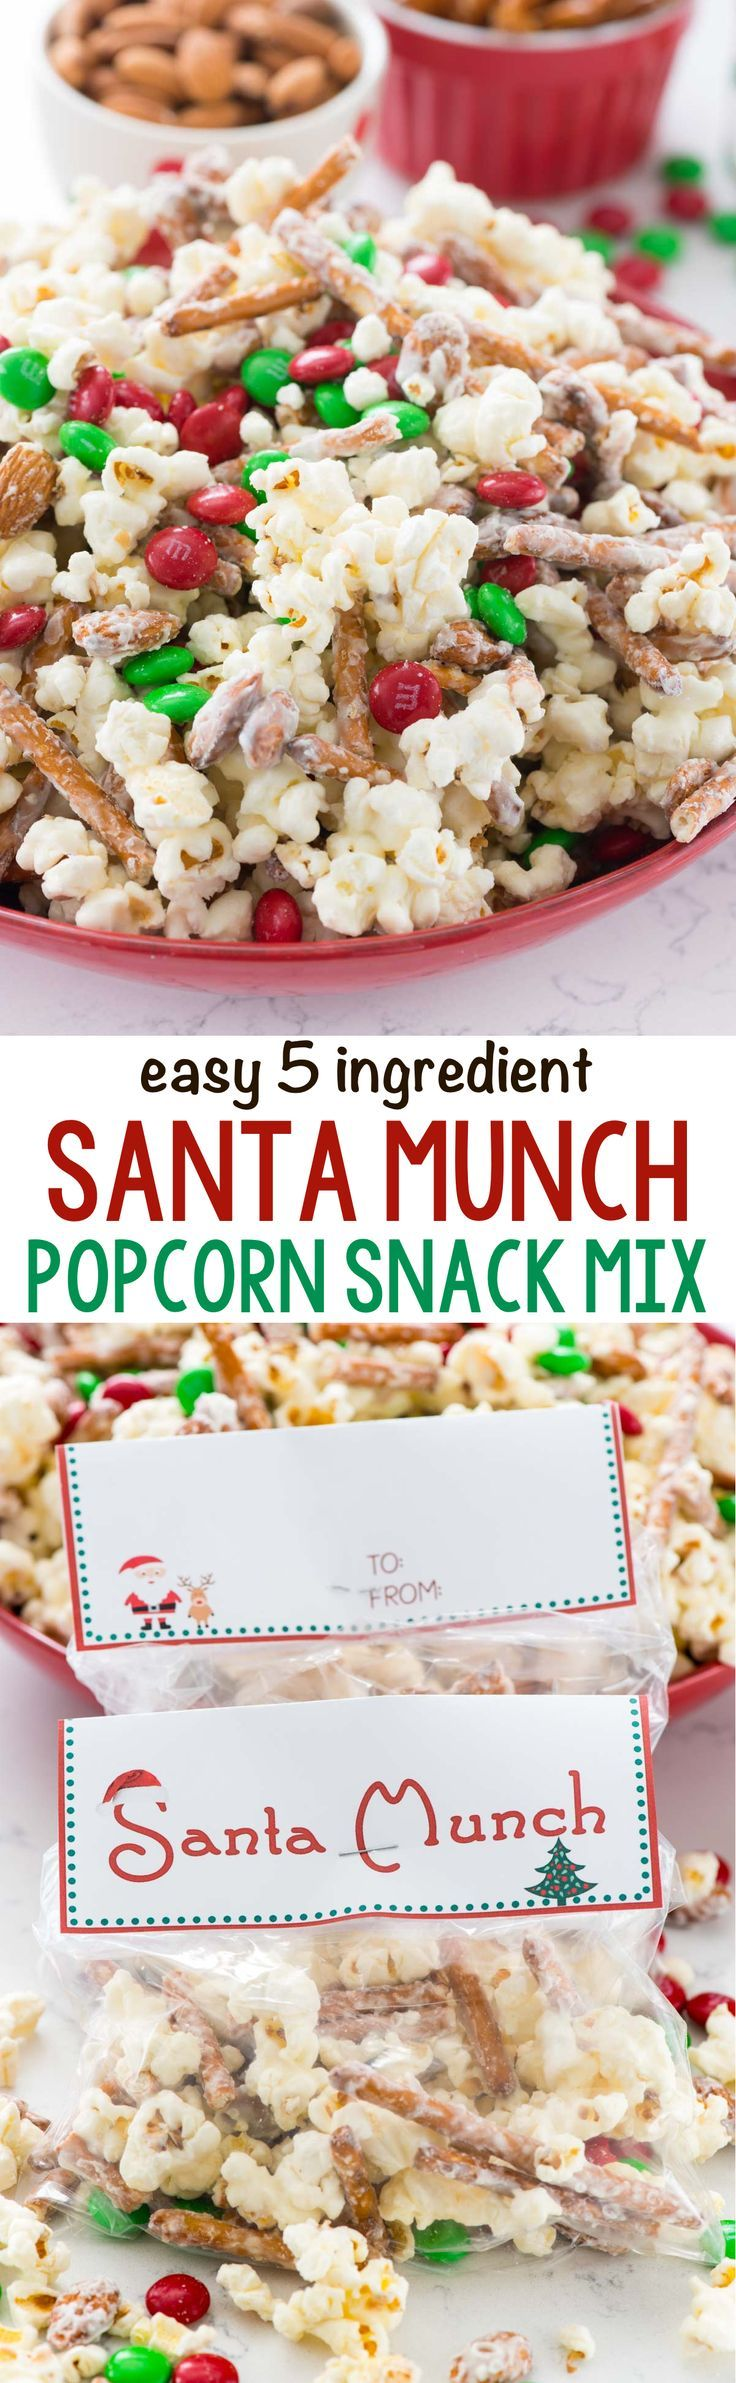 Santa Munch - this EASY 5 ingredient Popcorn Snack Mix is coated in white chocolate and makes the perfect snack for Christmas! Santa loves it...but the kids do too! Make them as goodie bags with the free printable!